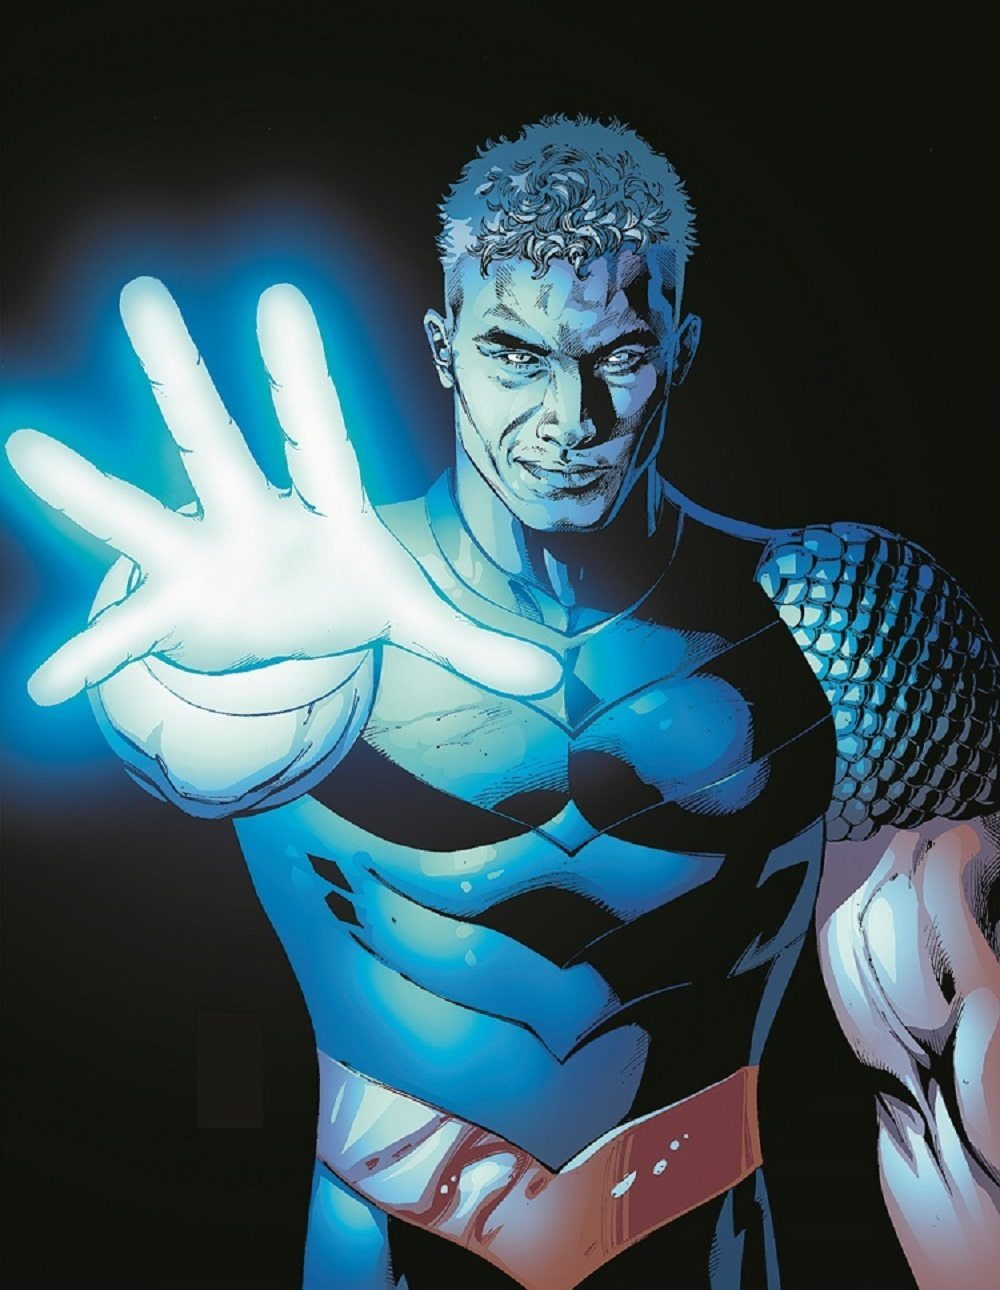 Depiction of Jericho with an outstretched, glowing hand.